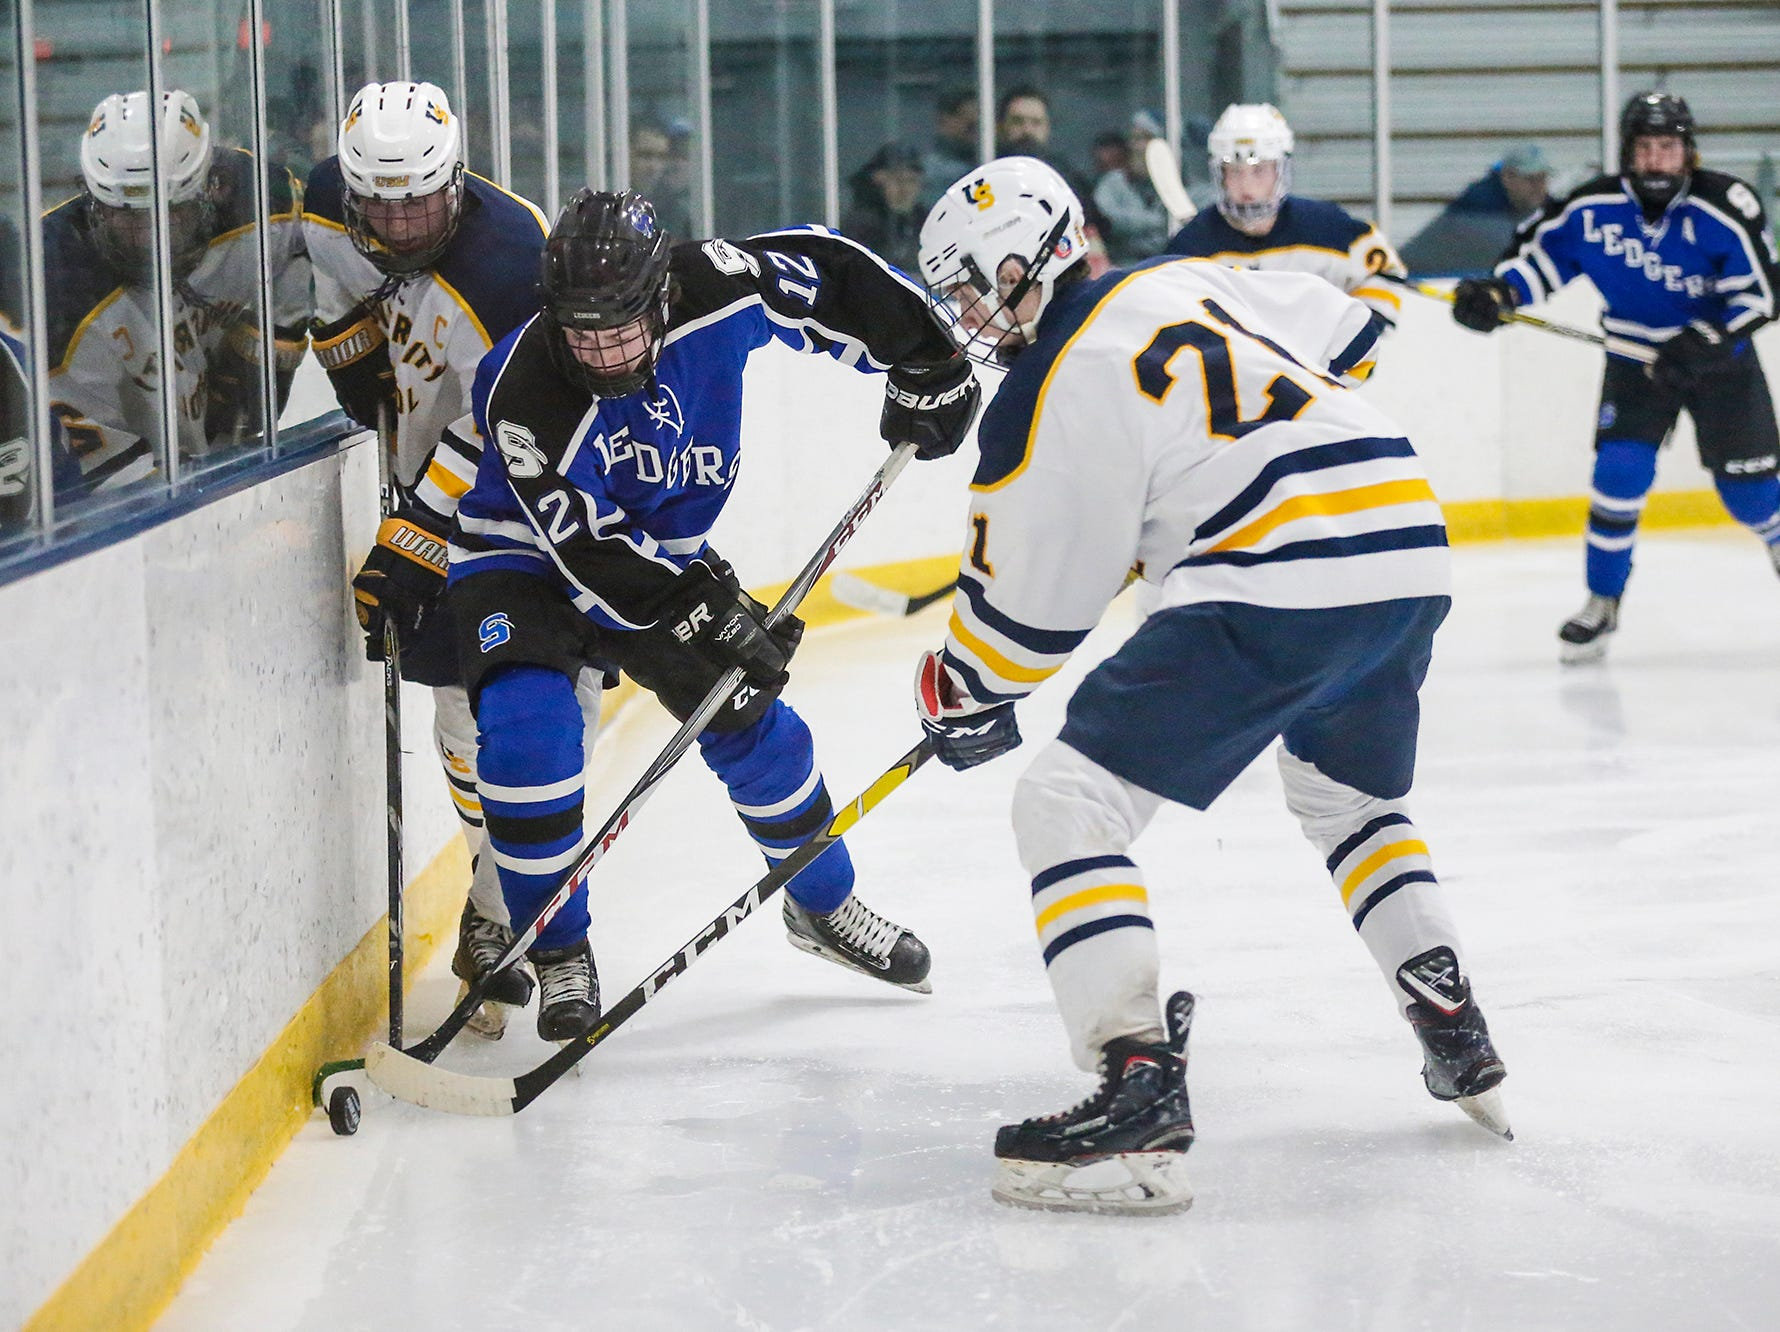 St. Mary's Springs boys co-op hockey's Mitchell Huettl (12) battles for the puck with University School of Milwaukee's Blake Carey (25) and Casey Roepke (21) Friday, February 22, 2019 during their WIAA sectional final game in Fond du Lac. University School won the game 6-1 and will advance to state. Doug Raflik/USA TODAY NETWORK-Wisconsin